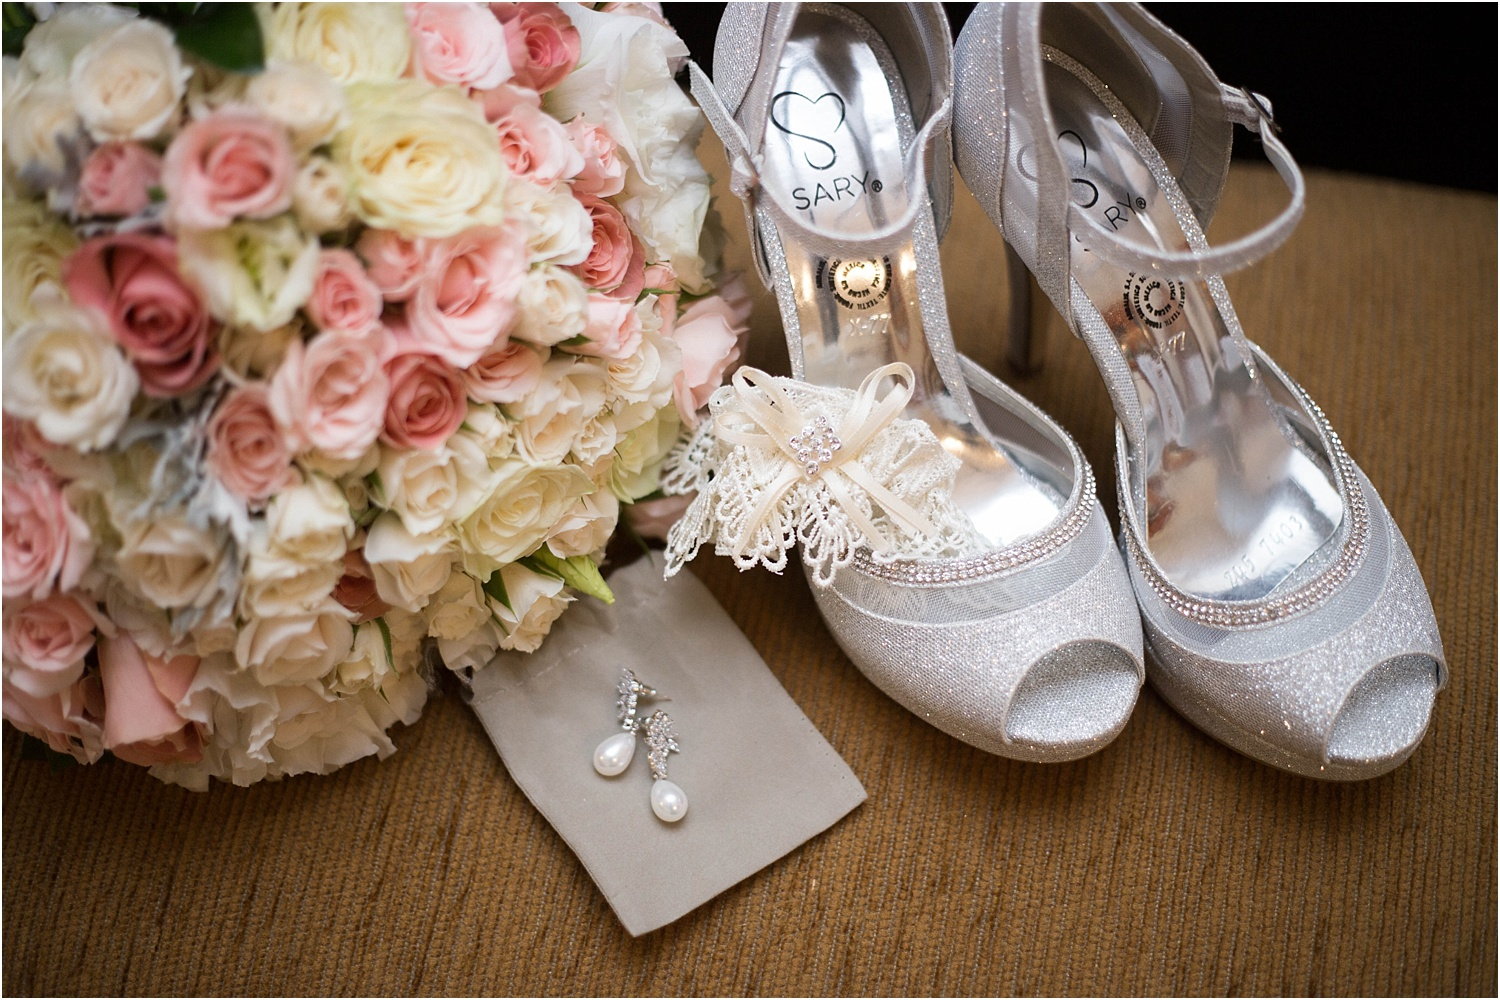 Image: Assistants can help gather details during a wedding day and help with styling as well.